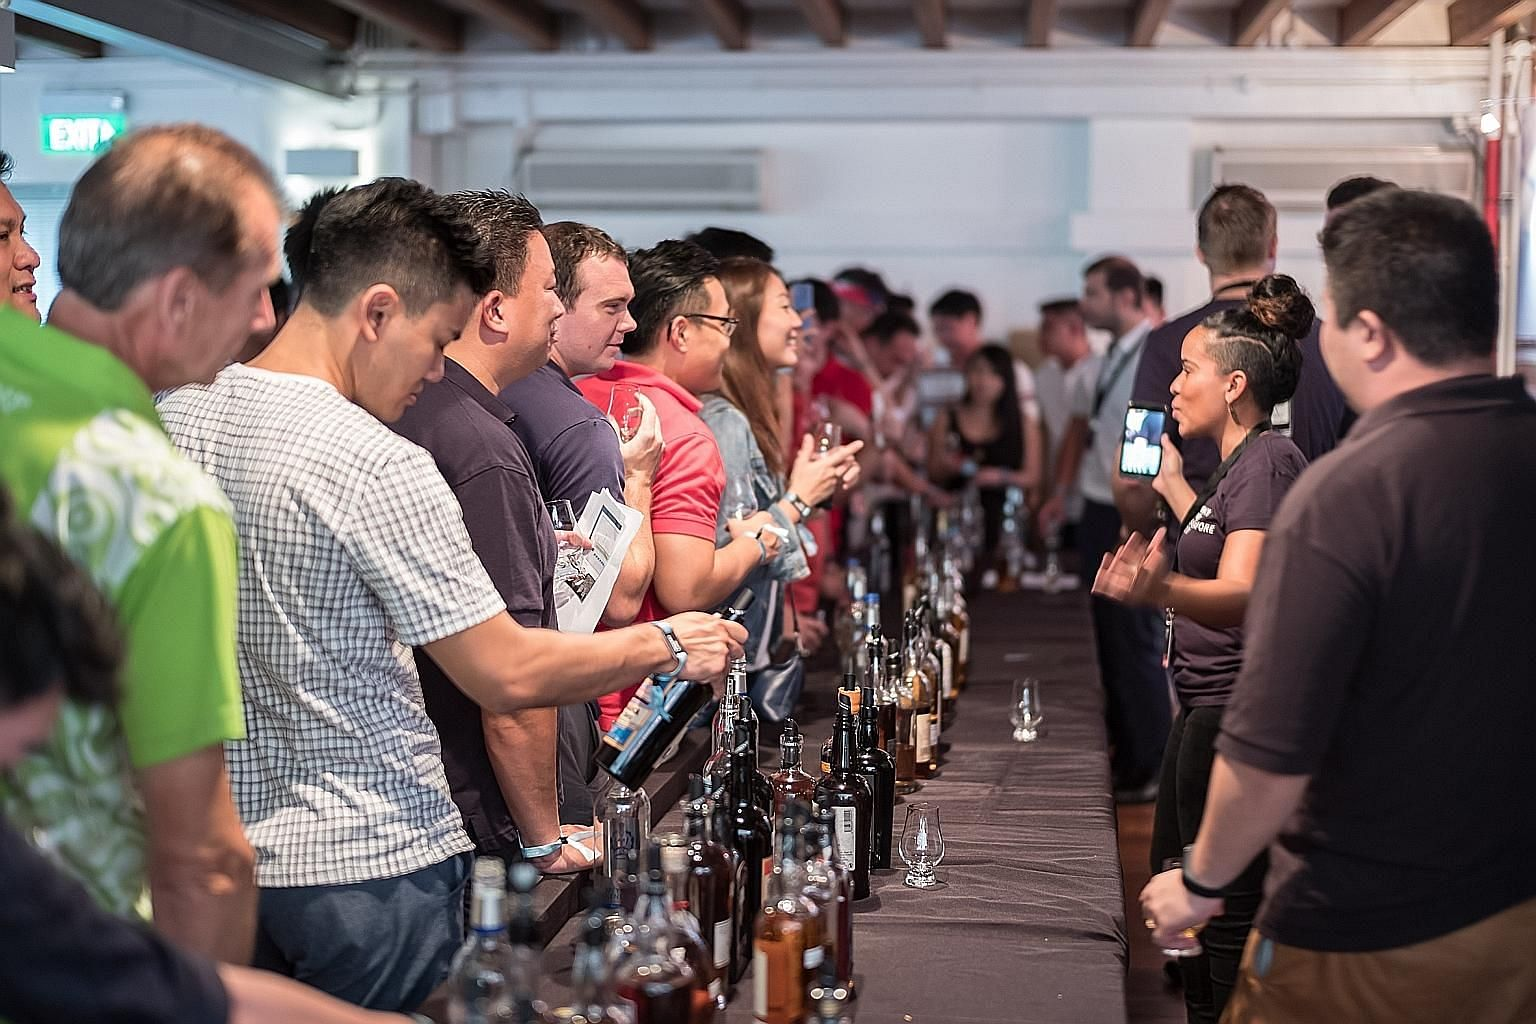 Last year's edition of Whisky Live (above), held at Robertson Quay, drew about 2,750 visitors.